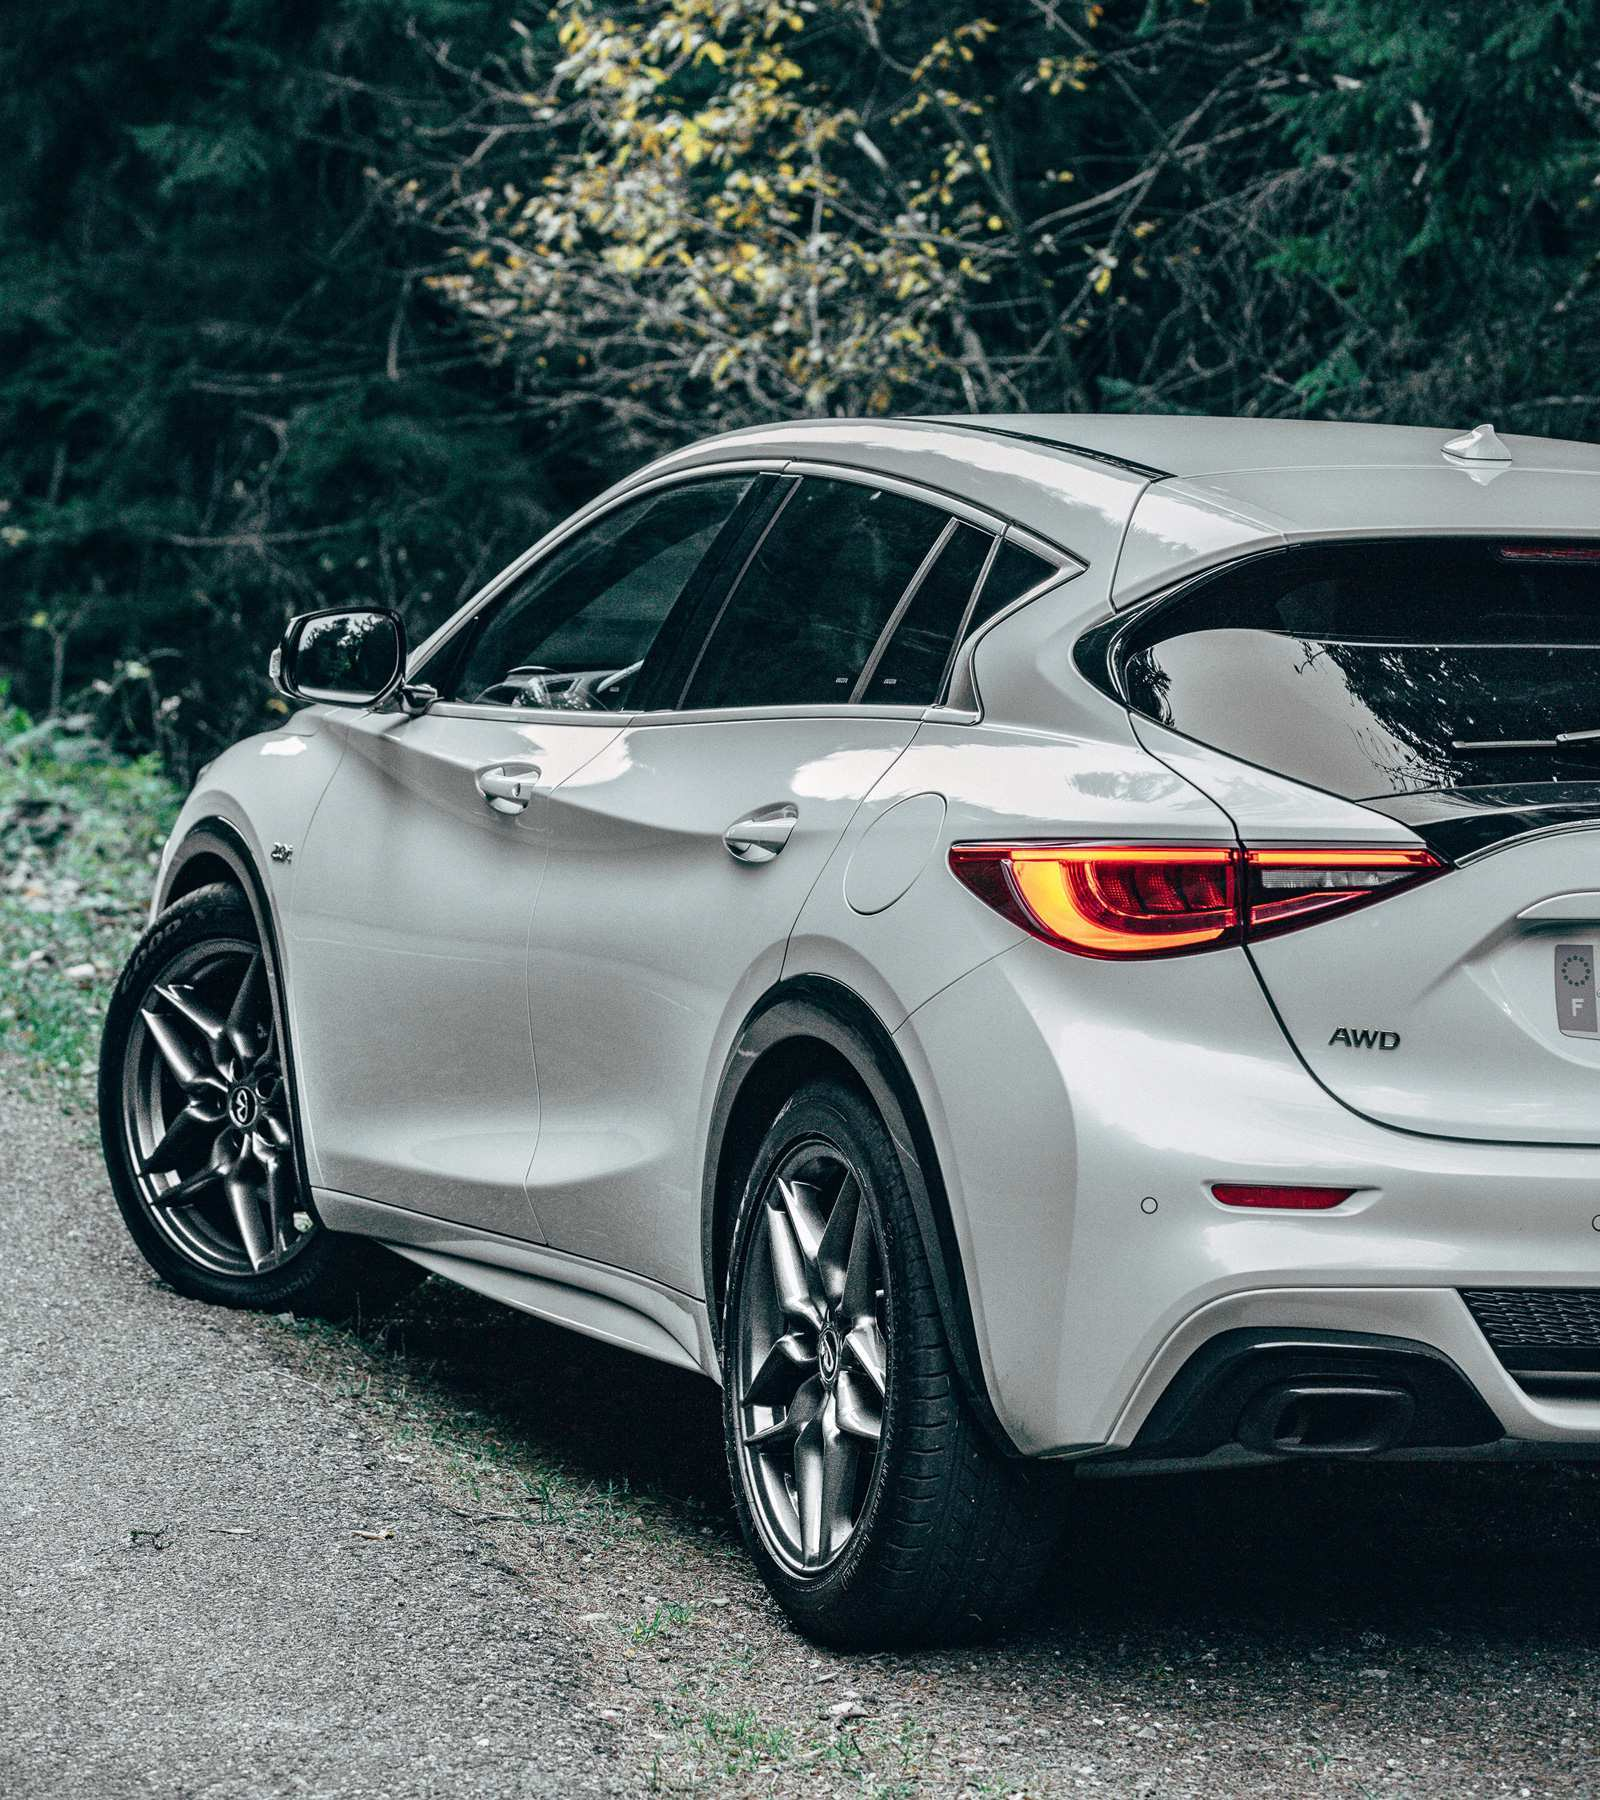 49 All New Infiniti Q30 Price Overview by Infiniti Q30 Price